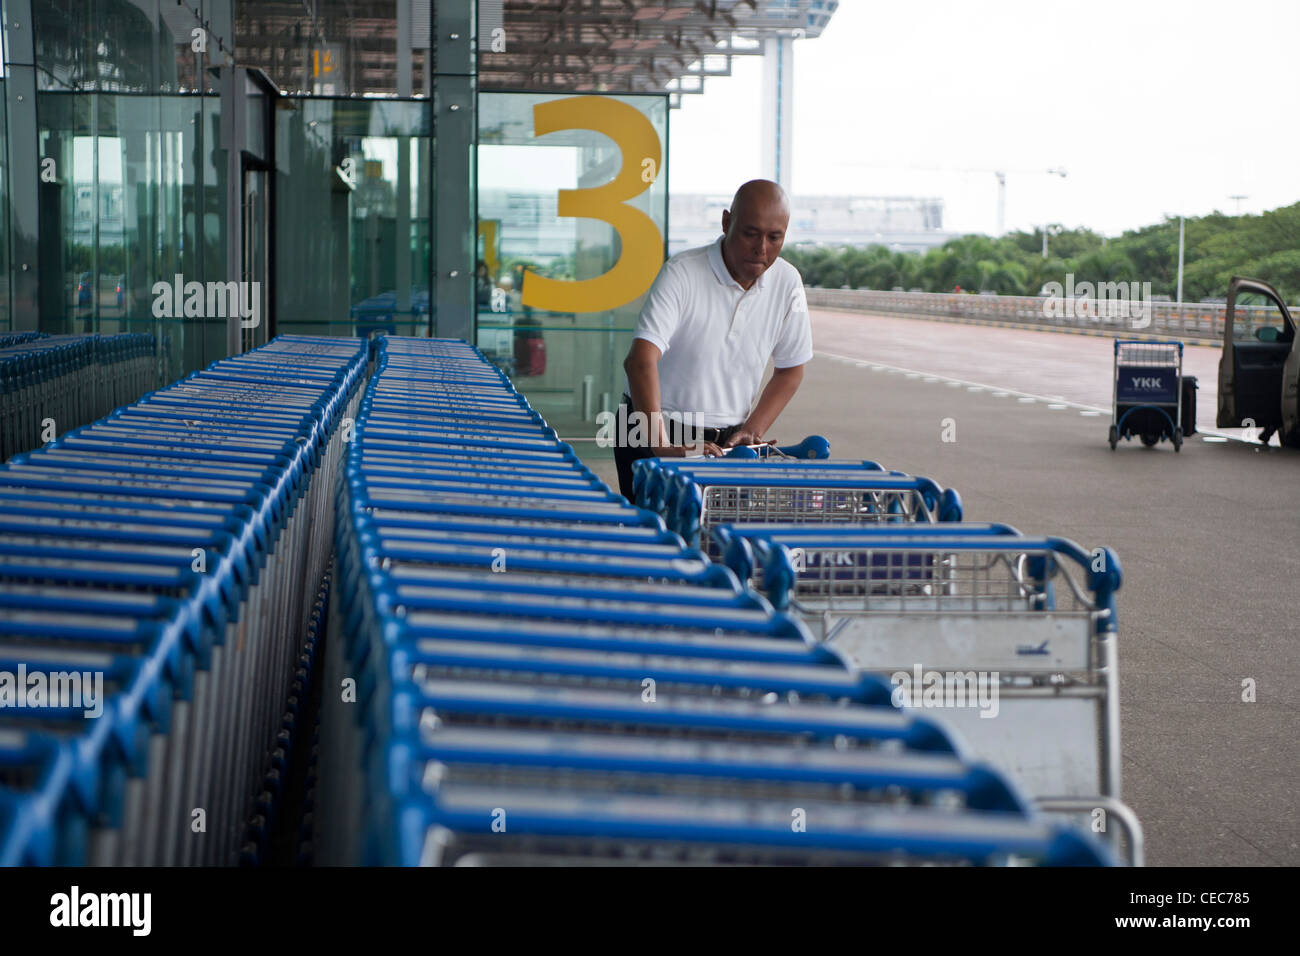 A passenger gets a baggage trolley outside the departures hall of Changi Airport terminal 3 in Singapore - Stock Image